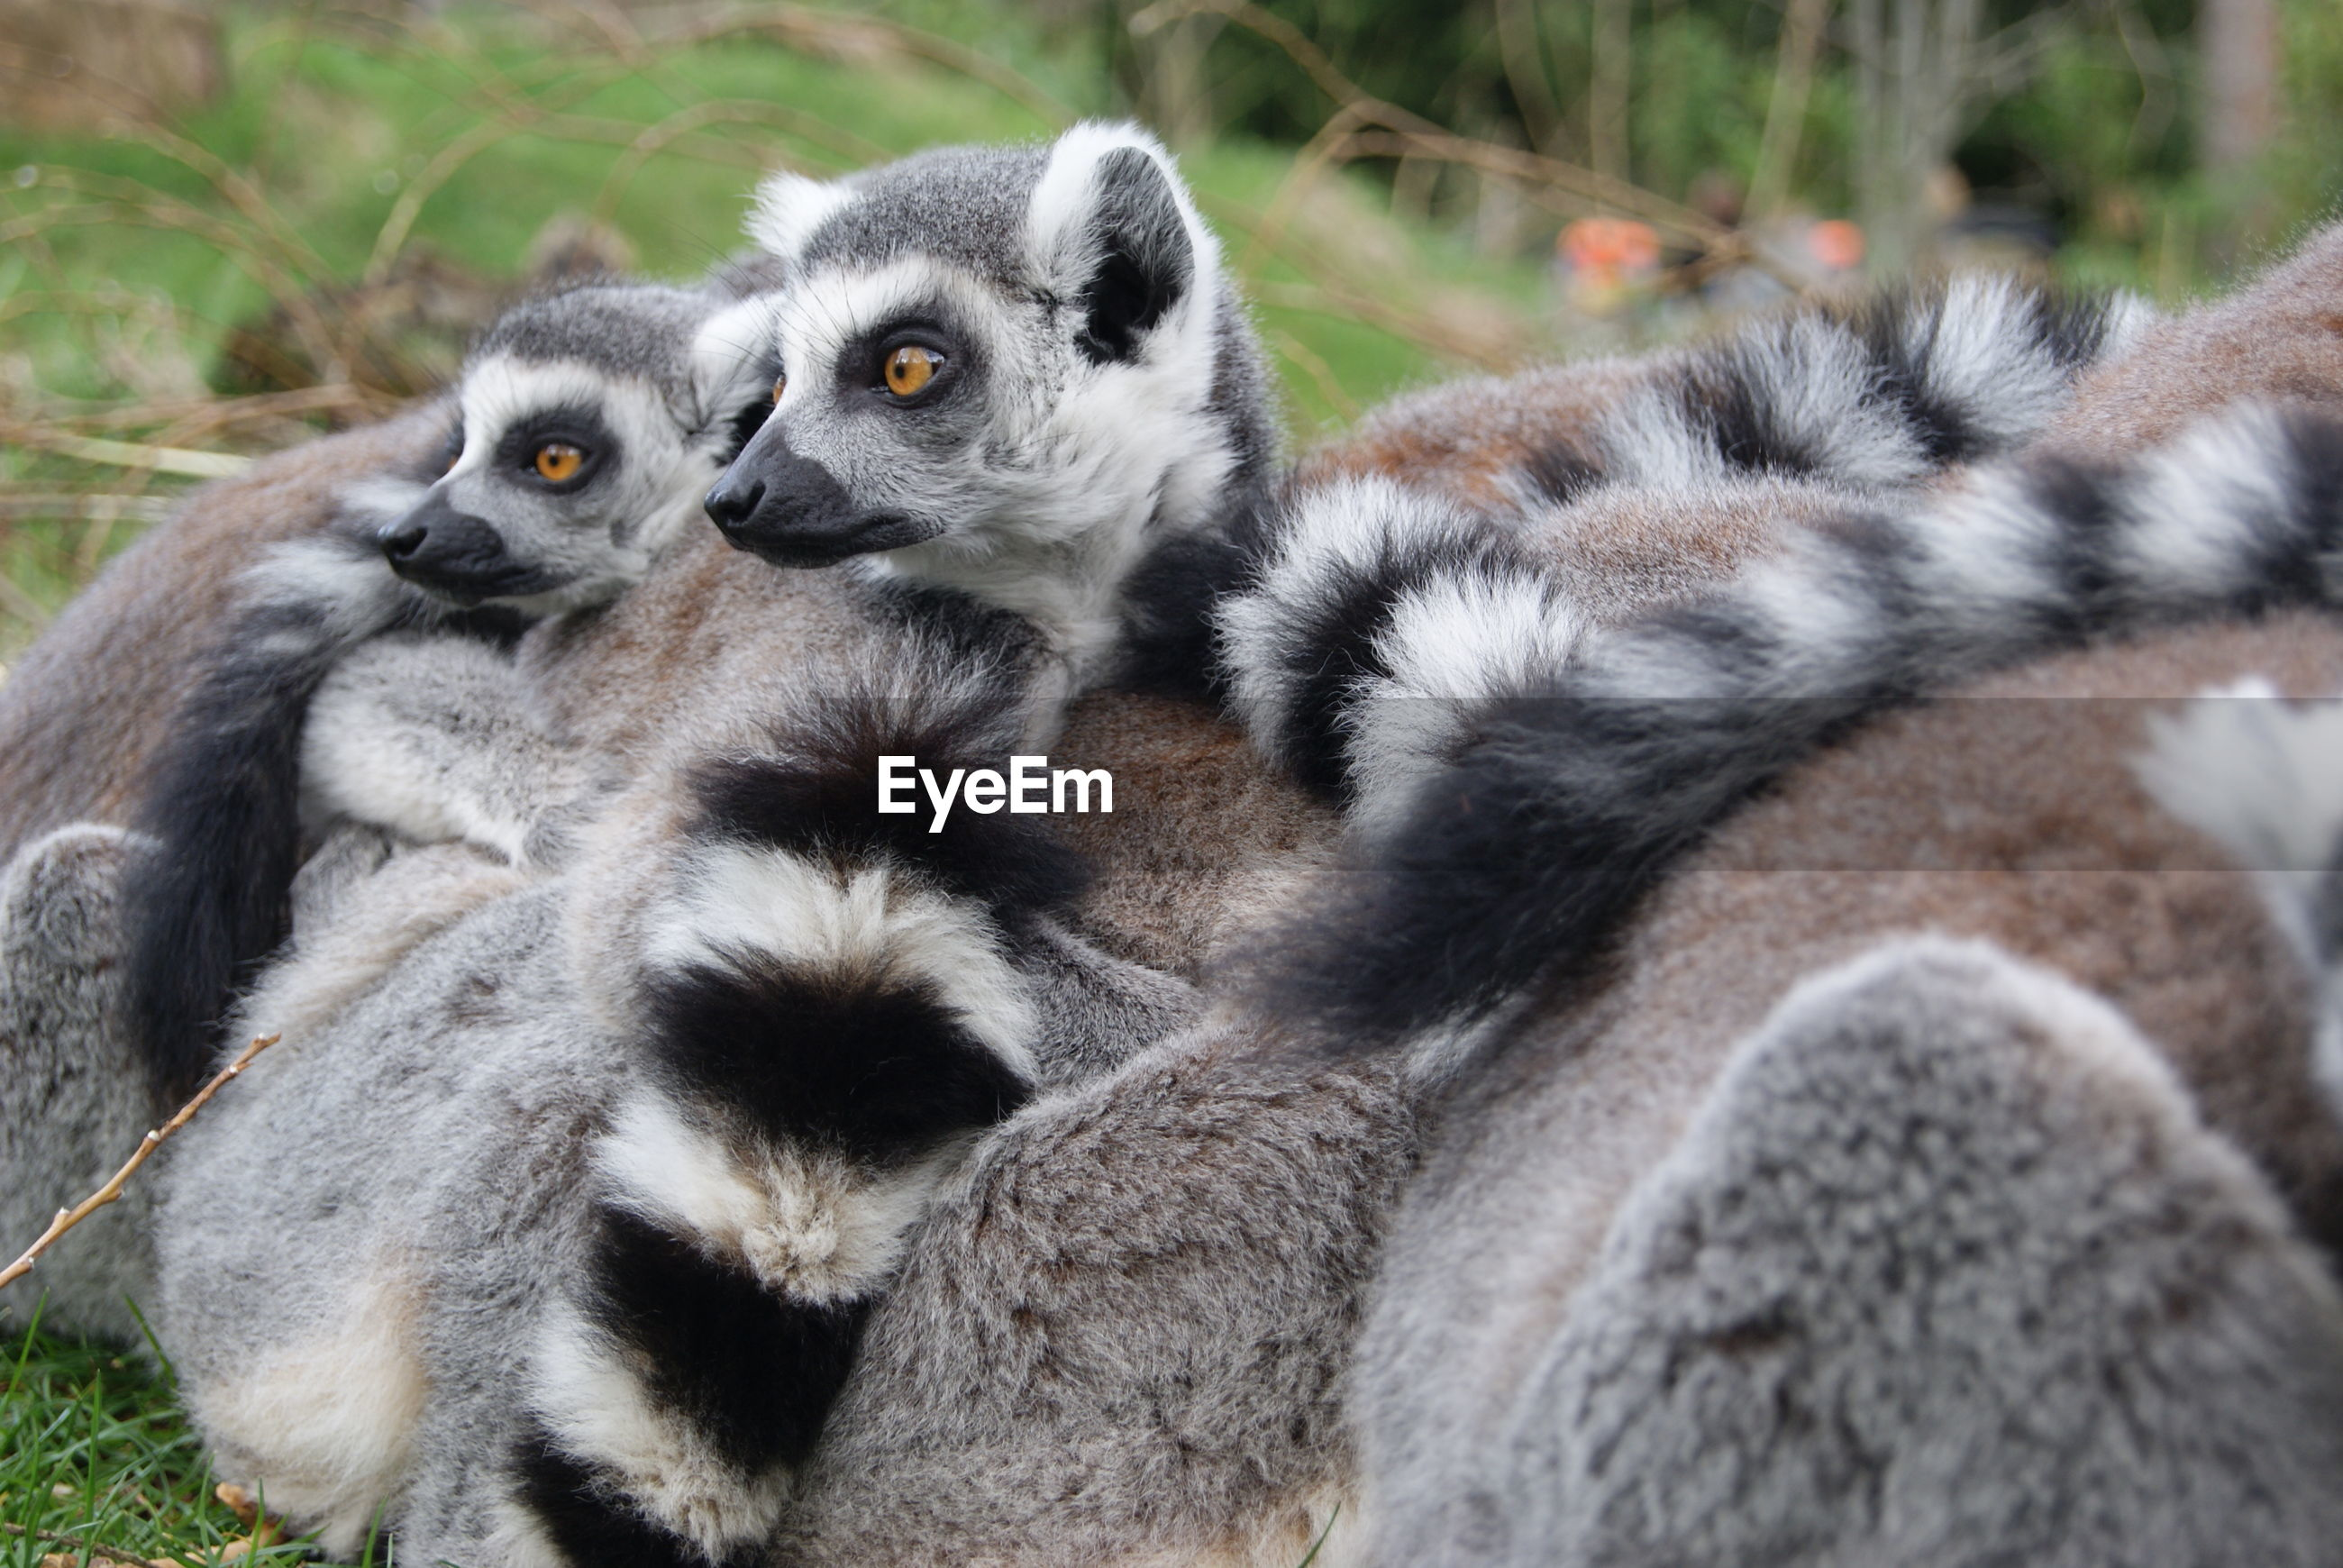 Close-up of lemurs in zoo